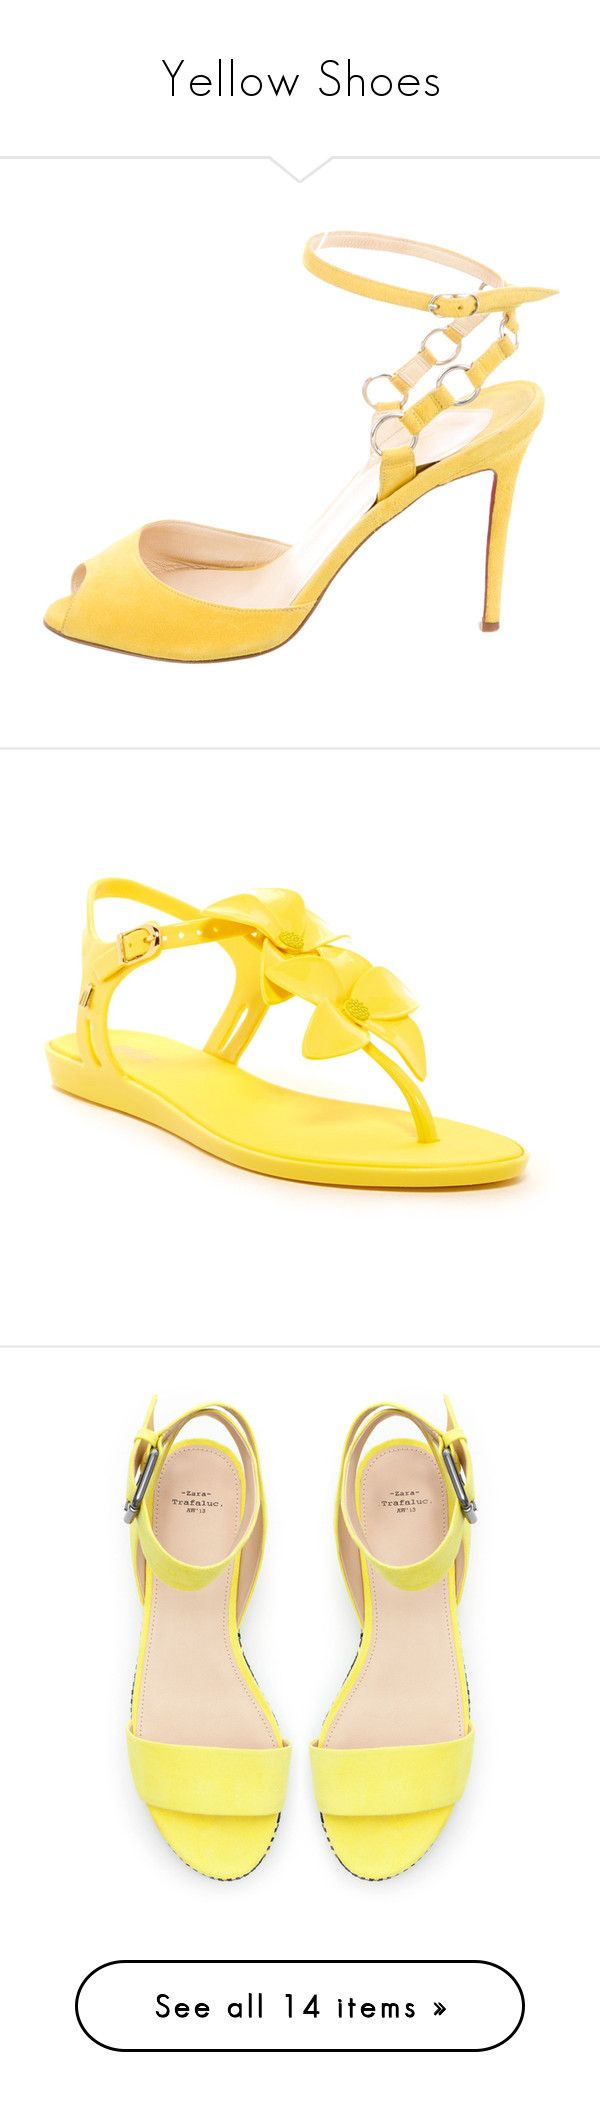 """""""Yellow Shoes"""" by alyssawui ❤ liked on Polyvore featuring shoes, pumps, yellow, peep-toe pumps, peeptoe shoes, yellow peep toe pumps, yellow suede pumps, peep-toe shoes, sandals and yellow ankle strap shoes"""